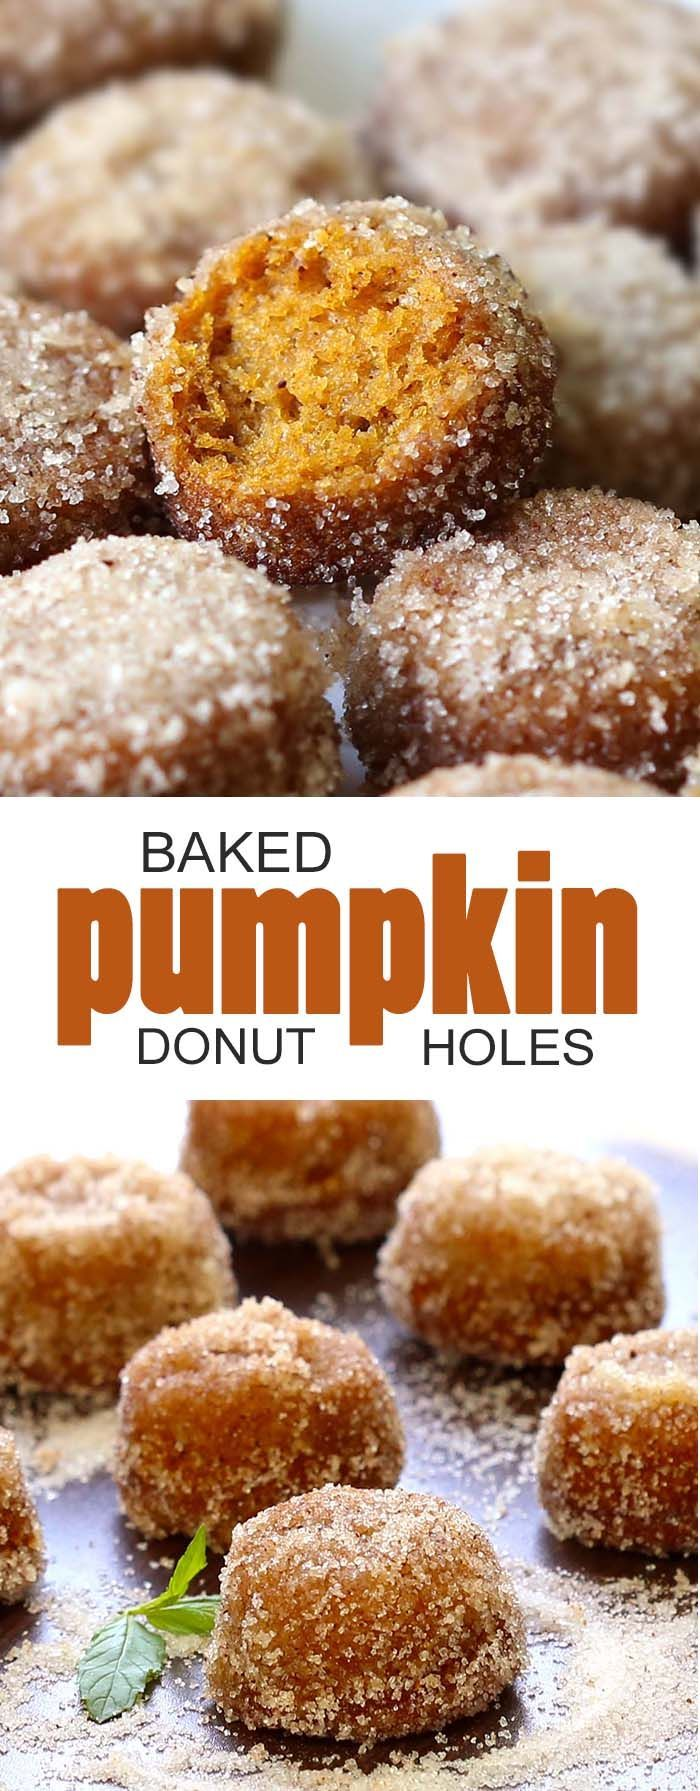 Baked Pumpkin Donut Holes Here is a fun & easy recipe for baked, not fried ( so you can eat more.. Serves: 30 Prep time 20 mins Cook time 12 mins Total time 32 mins